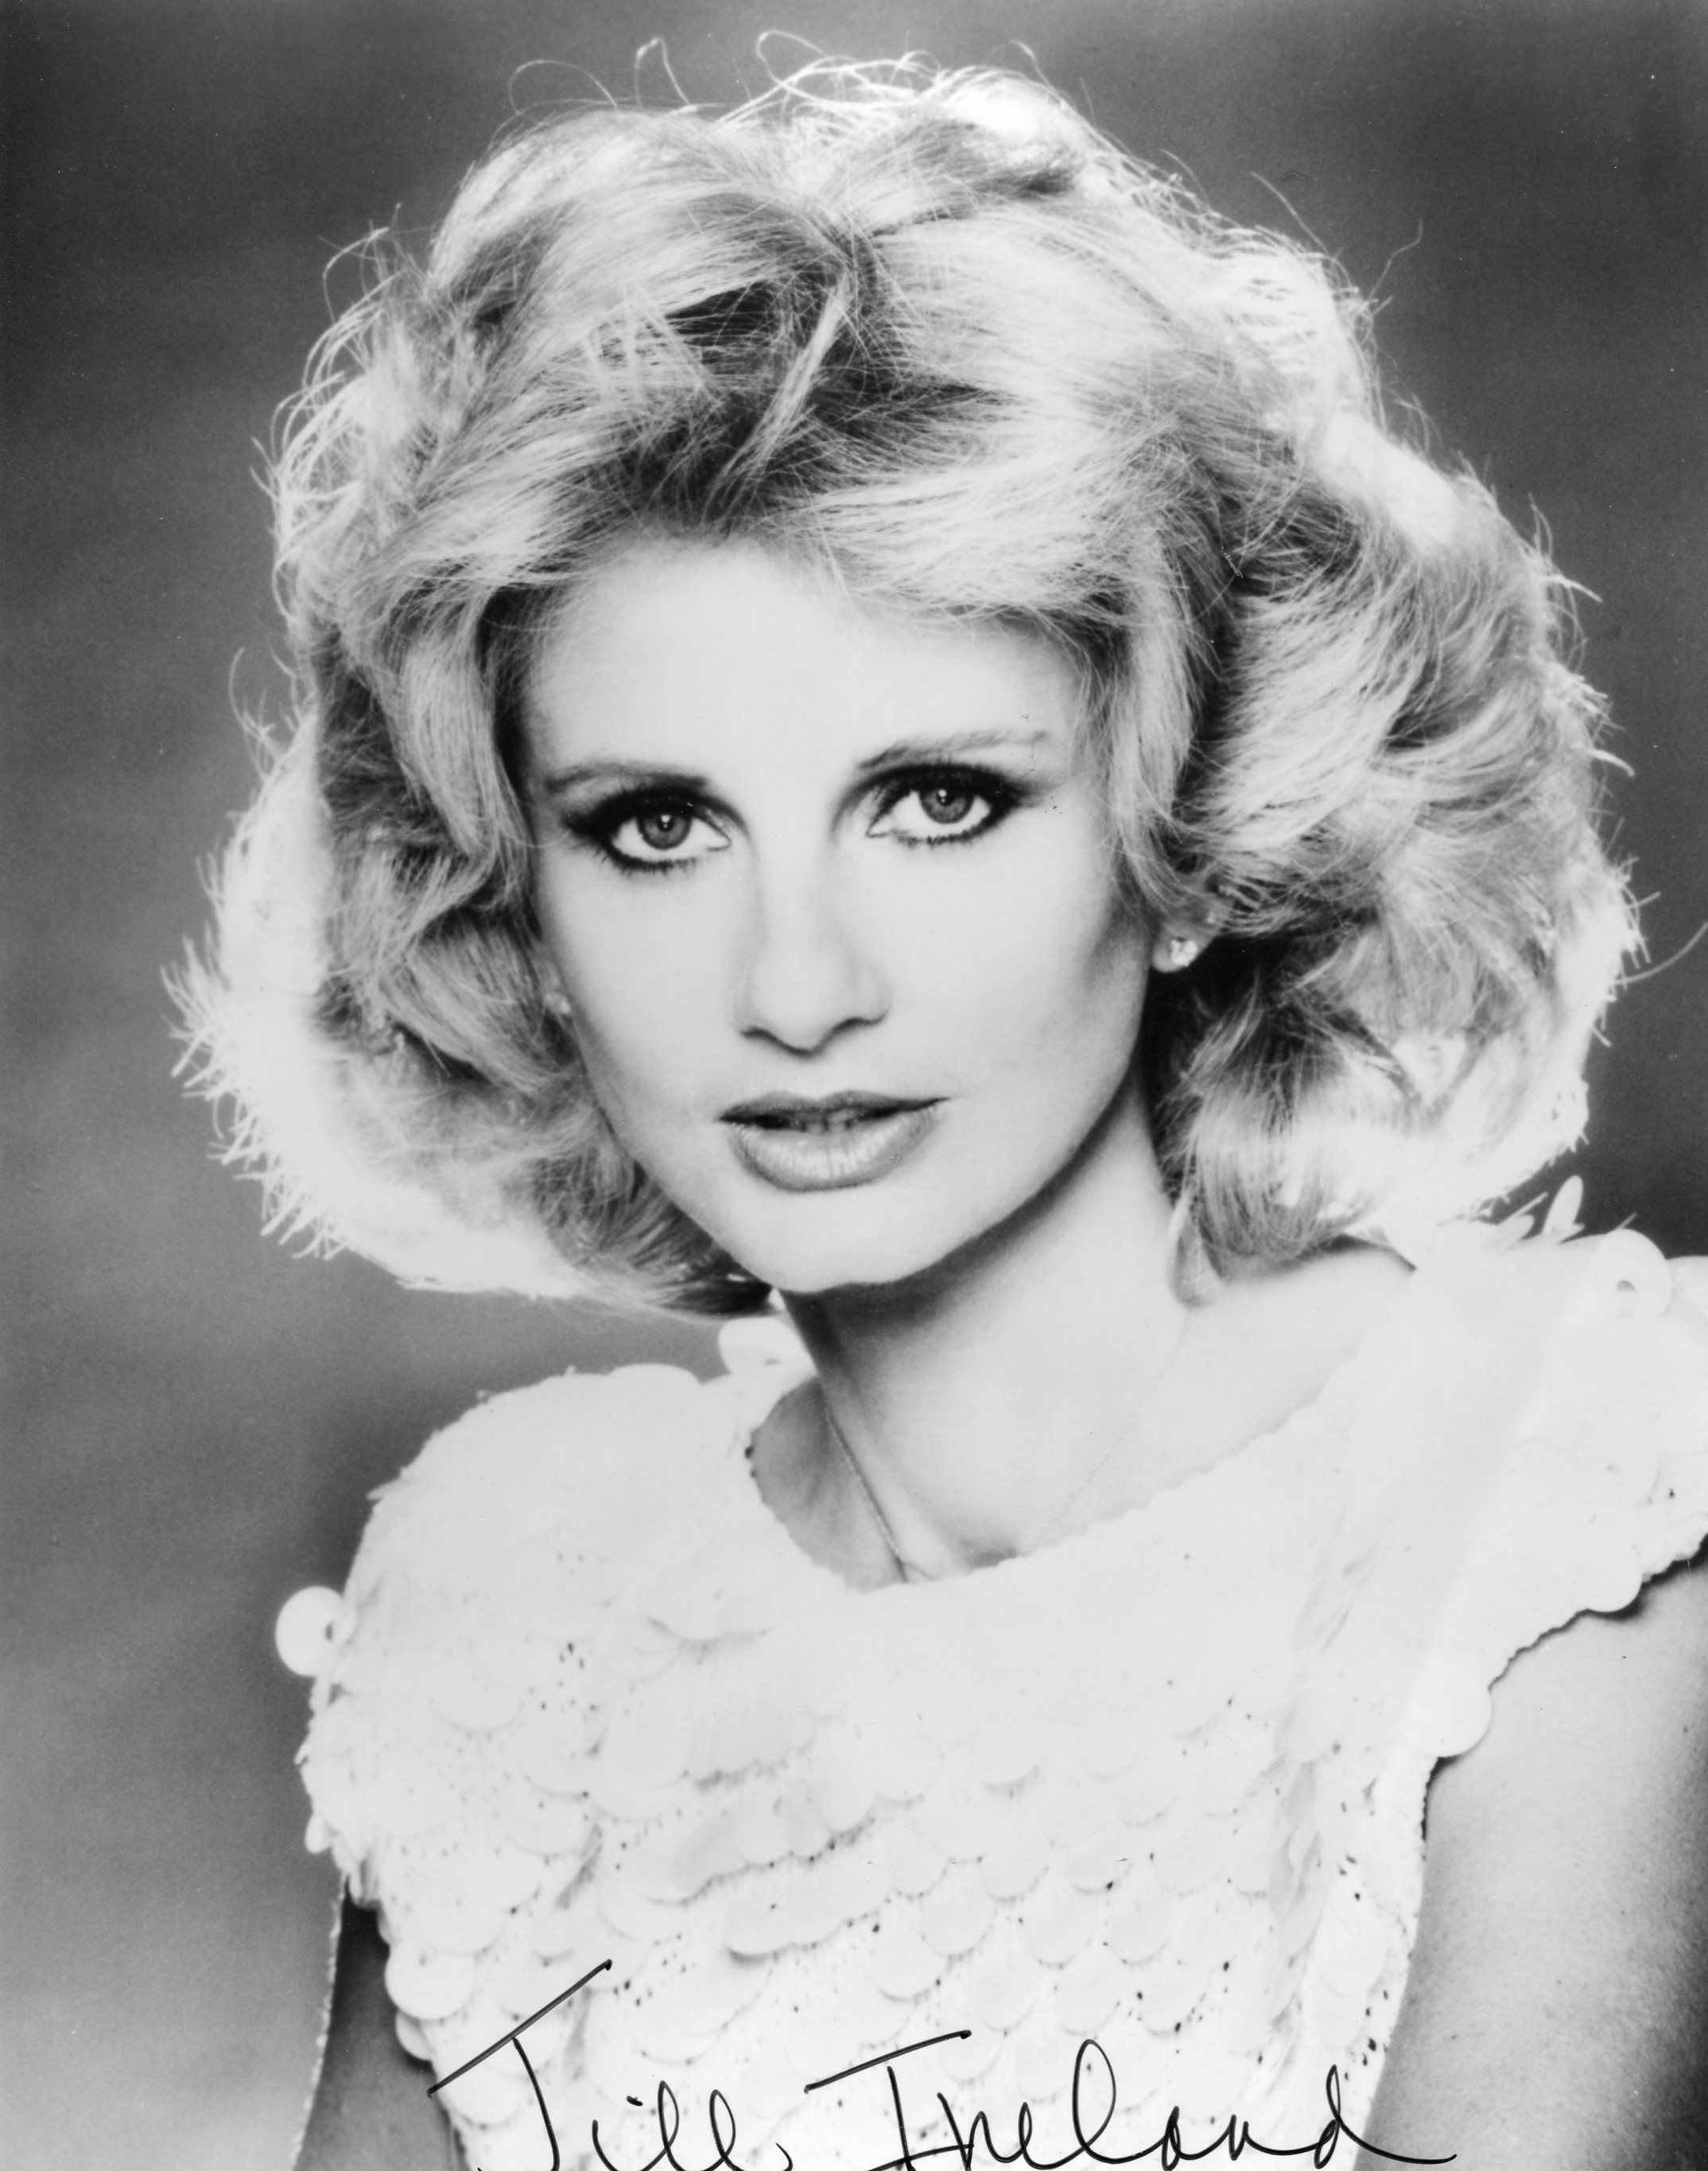 jill ireland hello and goodbye lyrics